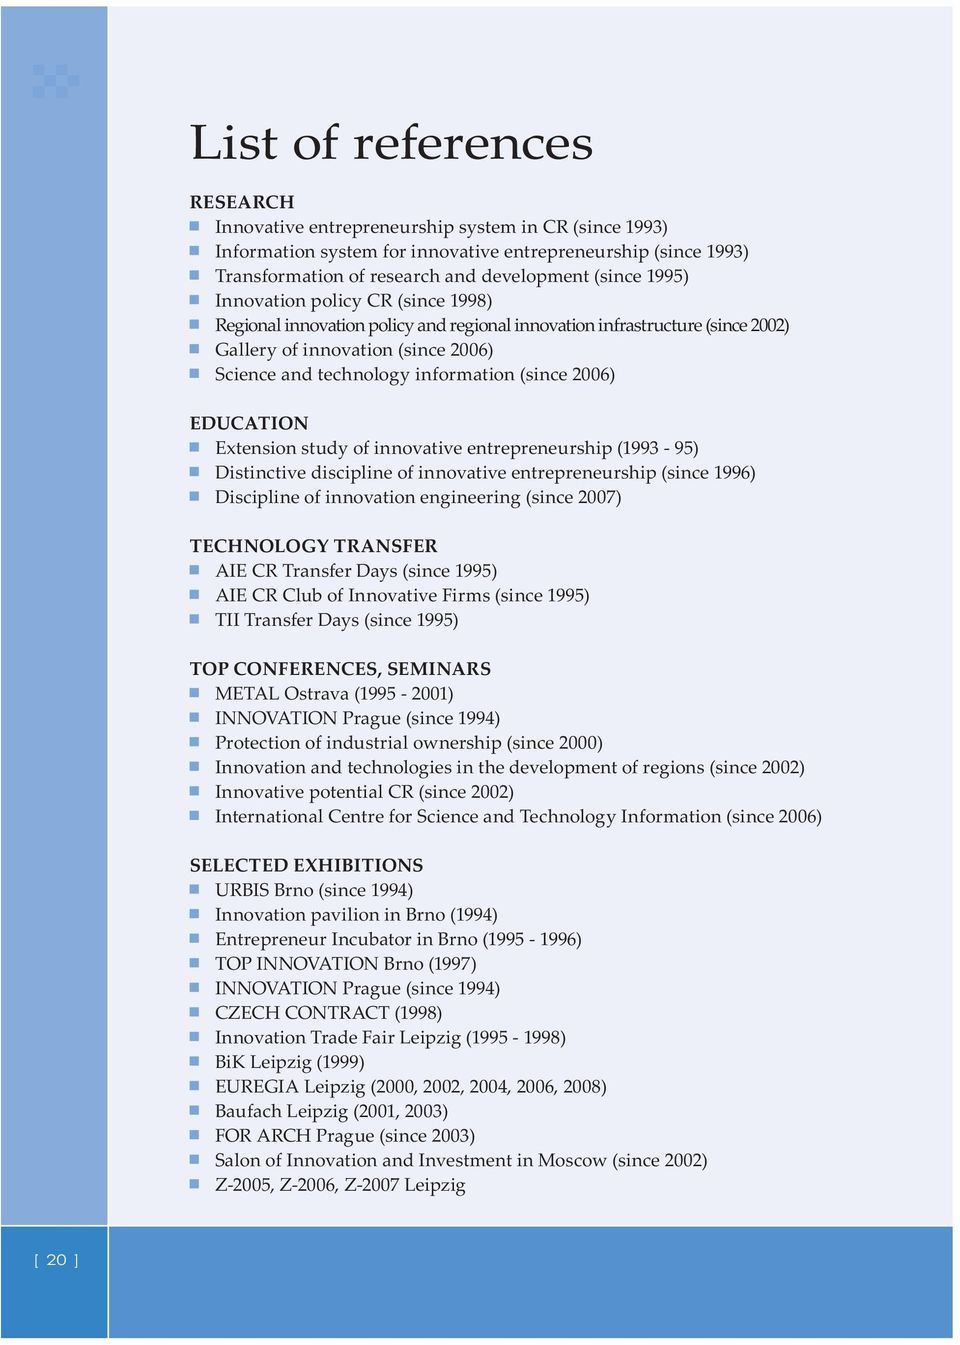 2006) EDUCATION Extension study of innovative entrepreneurship (1993-95) Distinctive discipline of innovative entrepreneurship (since 1996) Discipline of innovation engineering (since 2007)